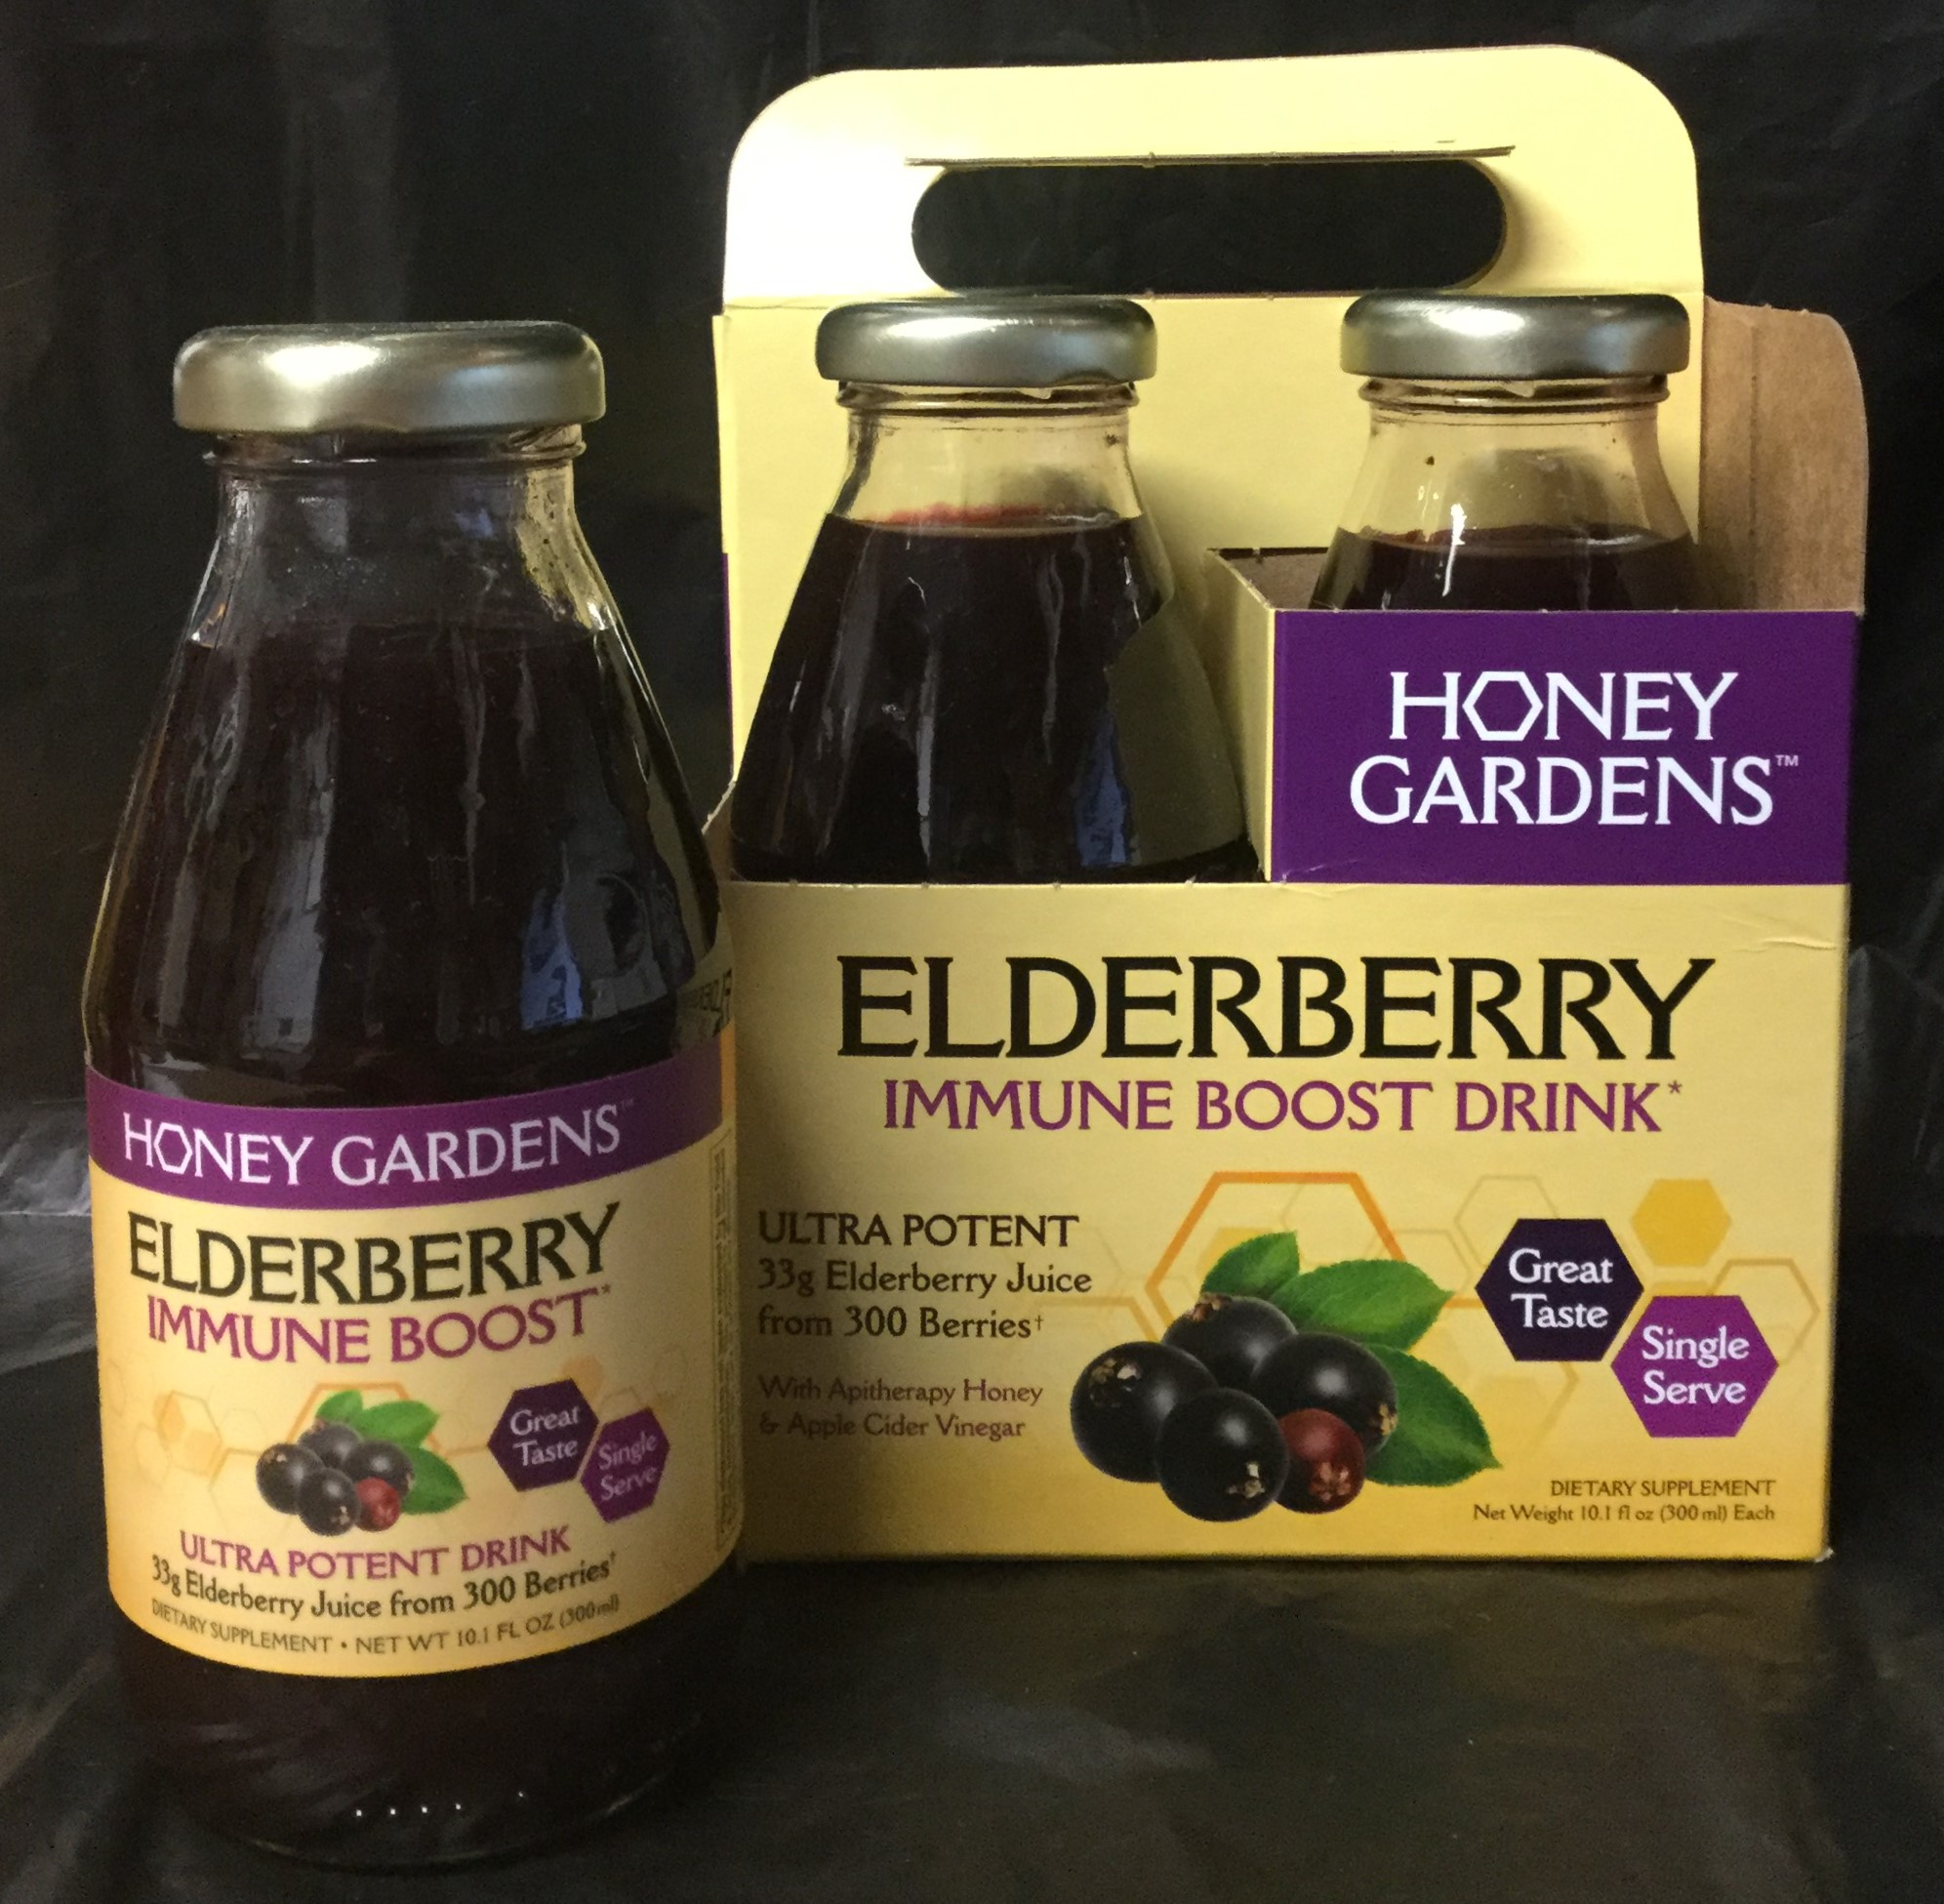 Elderberry Immune Boost Drink by Honey Gardens